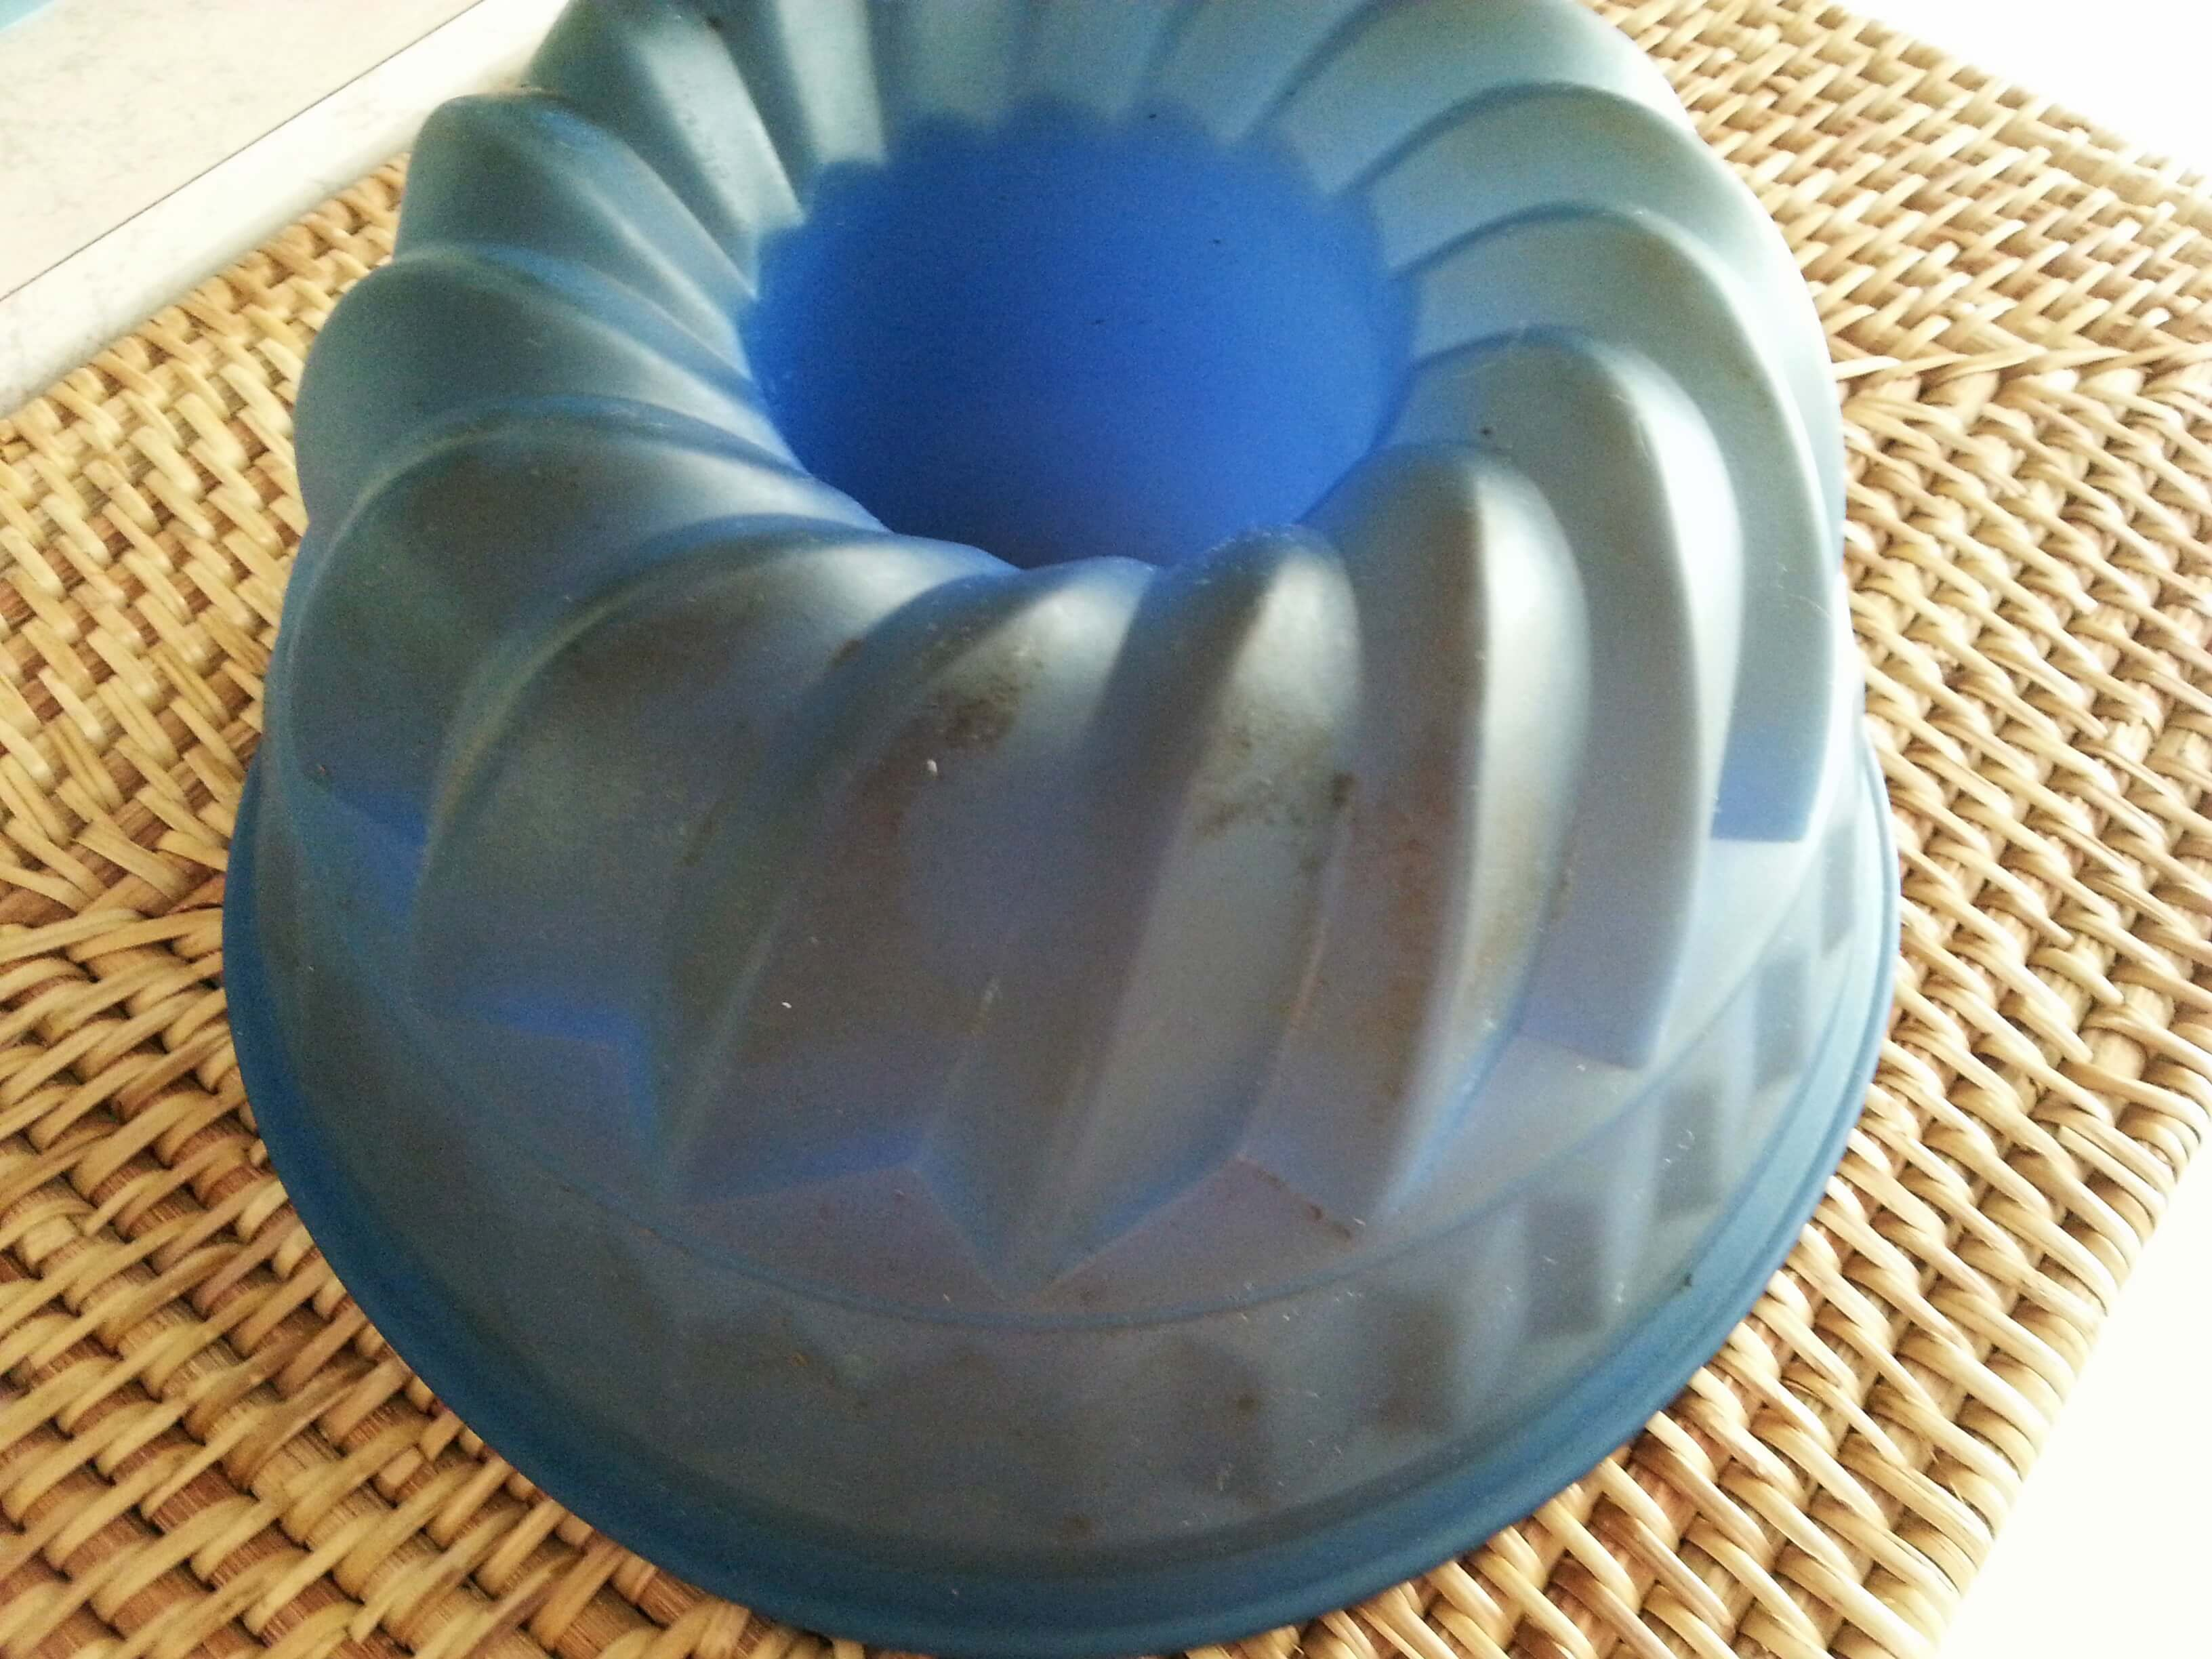 How to care for your silicone bakeware | Kicking Back the Pebbles